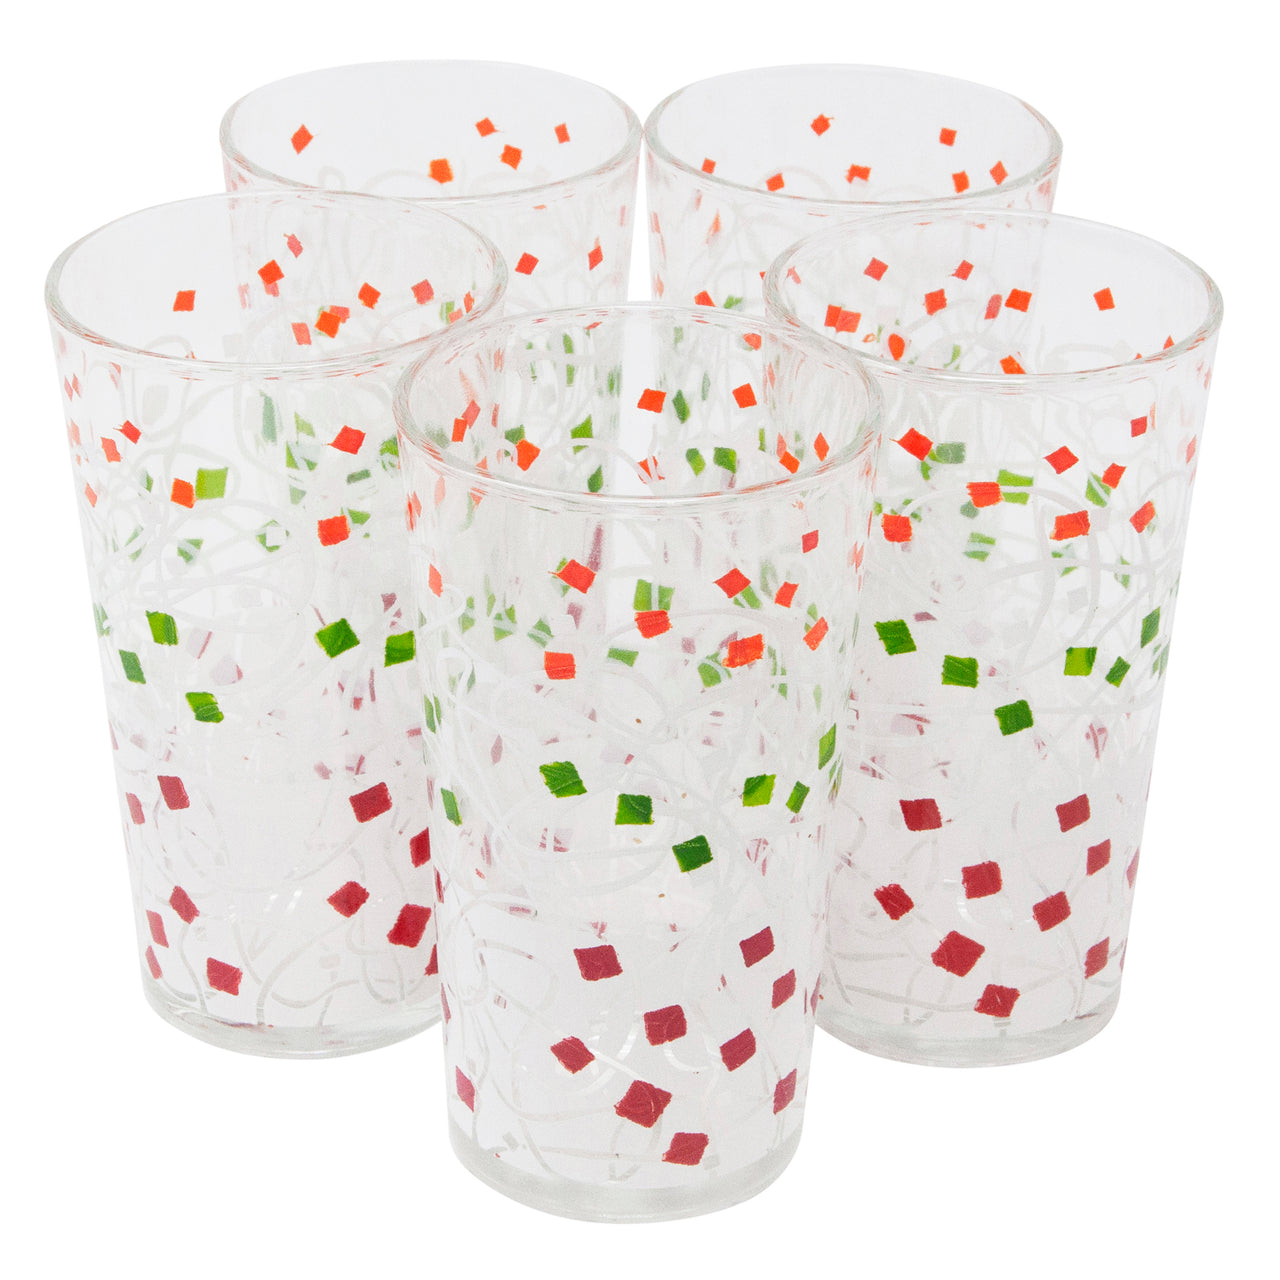 Vintage Confetti & Swirls Tumblers | The Hour Shop